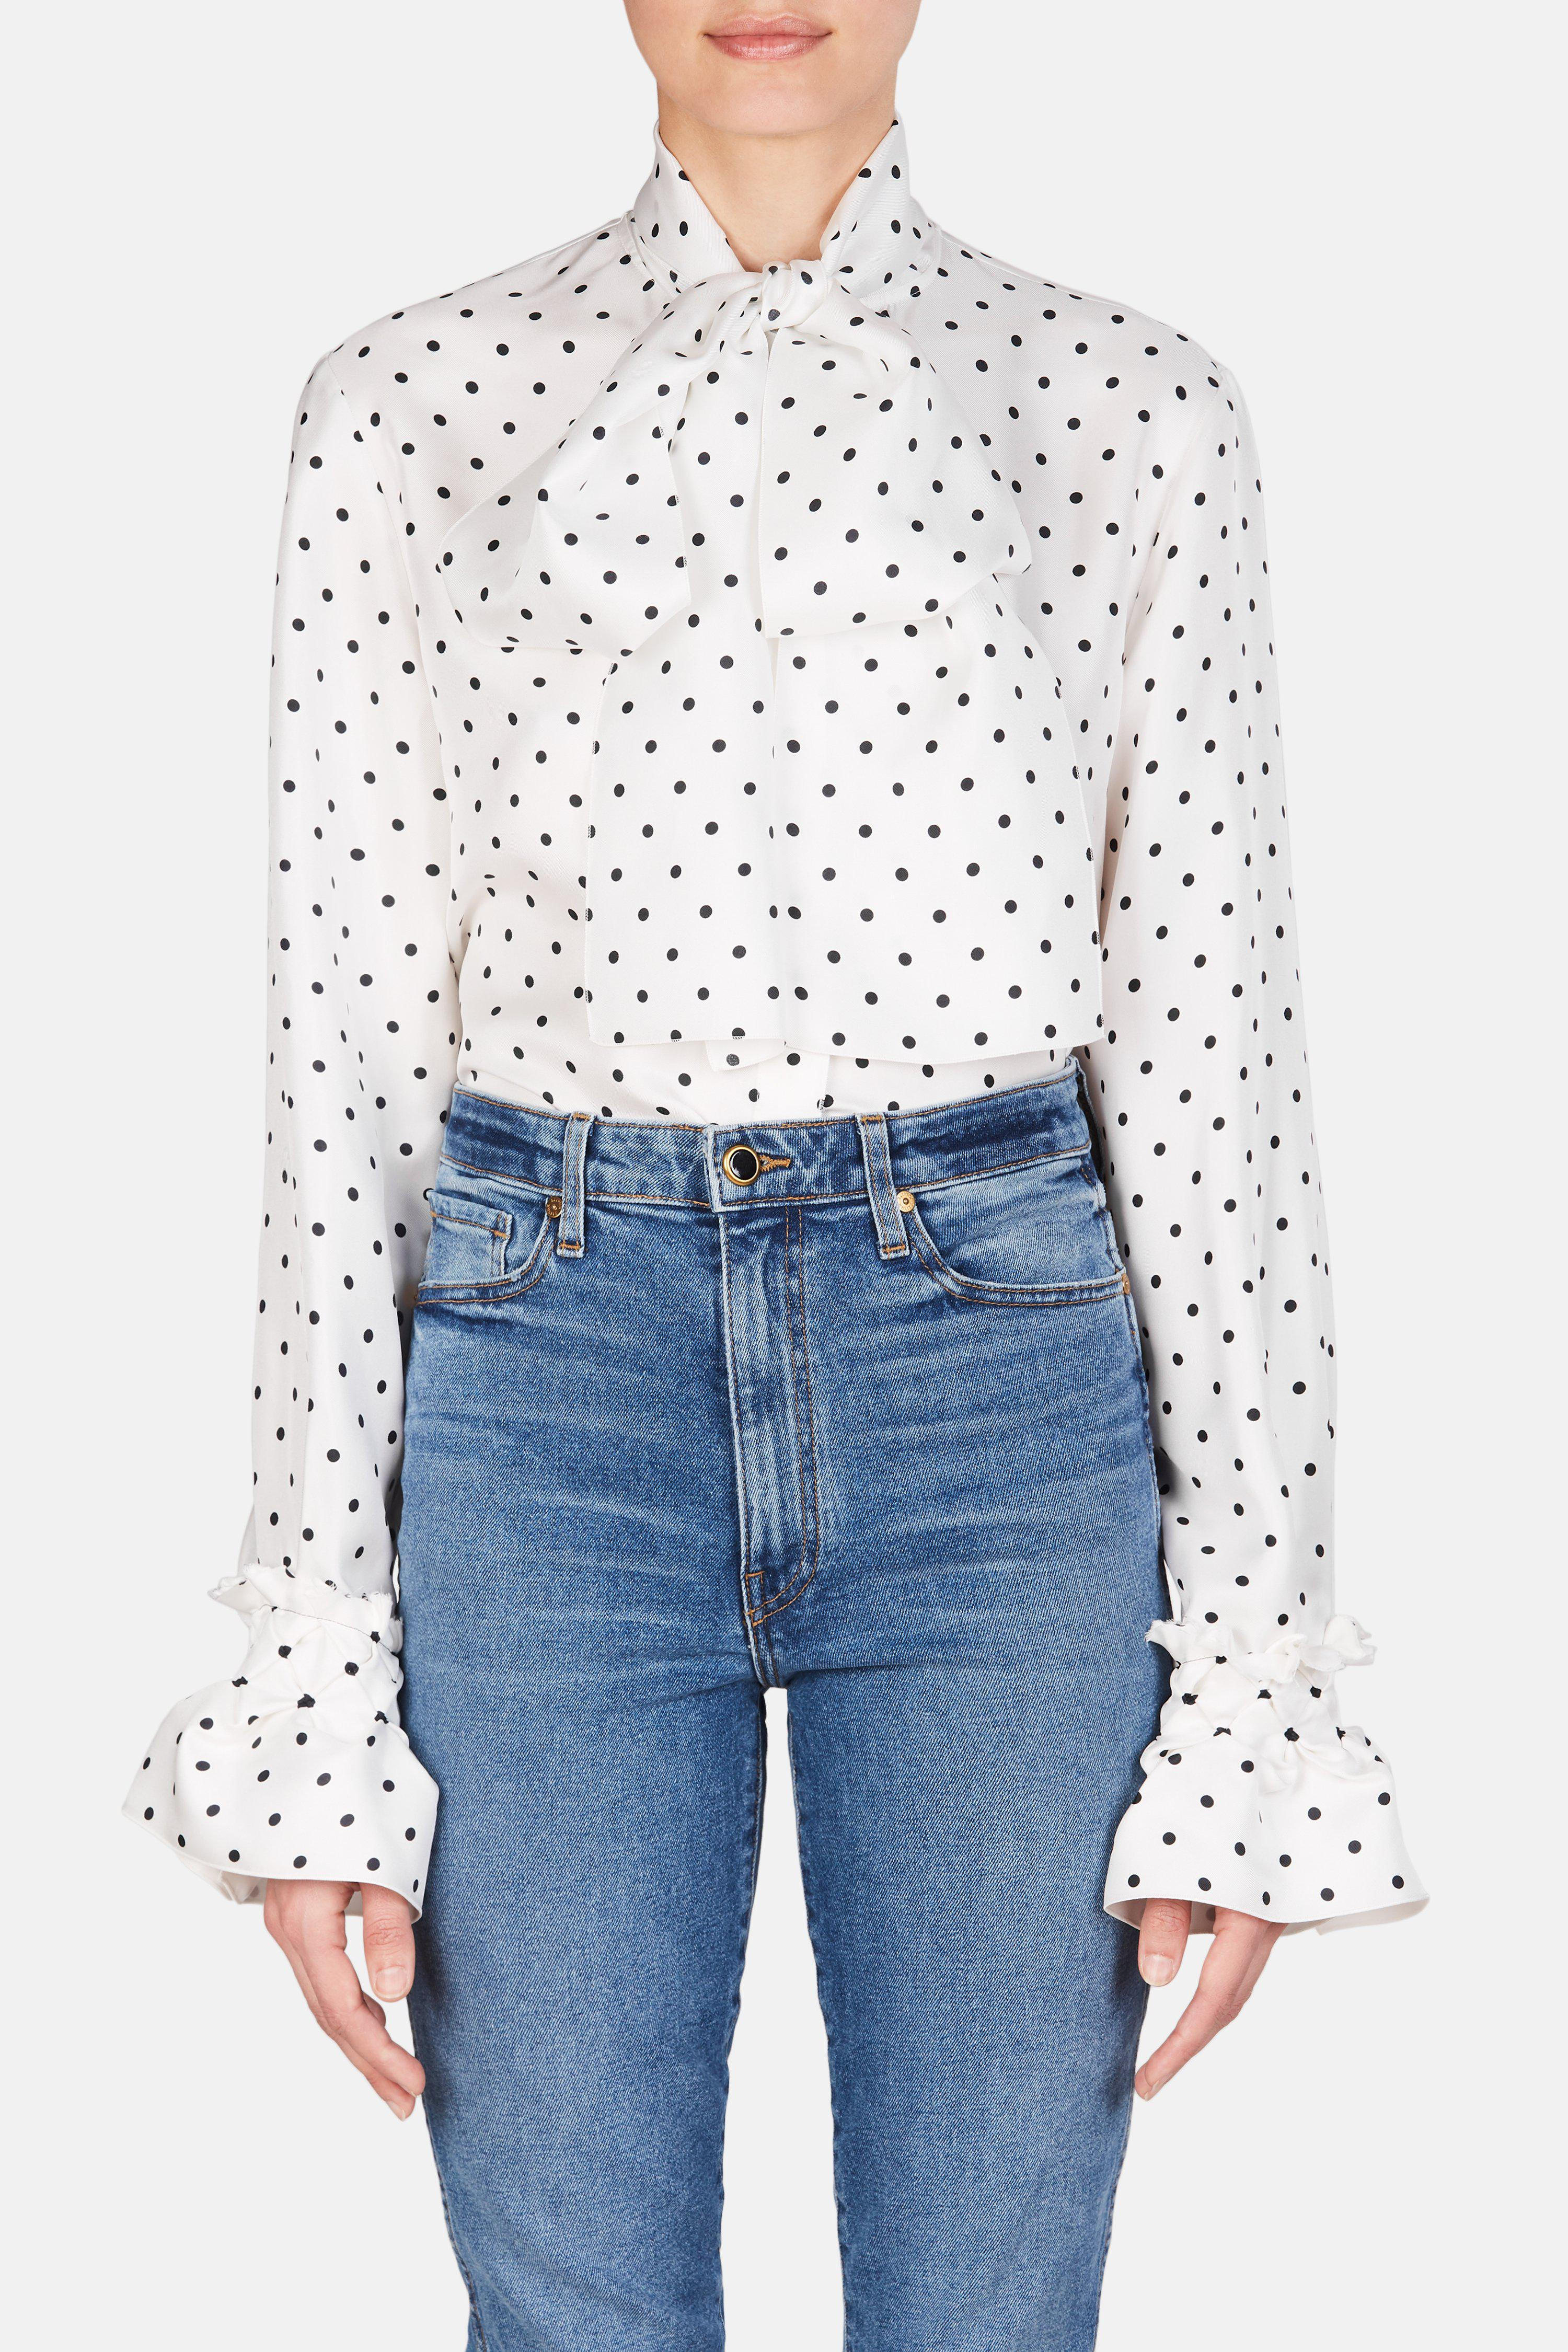 For Sale Extremely Sale Online Loewe Lavalliere blouse Buy Cheap Exclusive Free Shipping Cost Finishline Cheap Online l40ePi